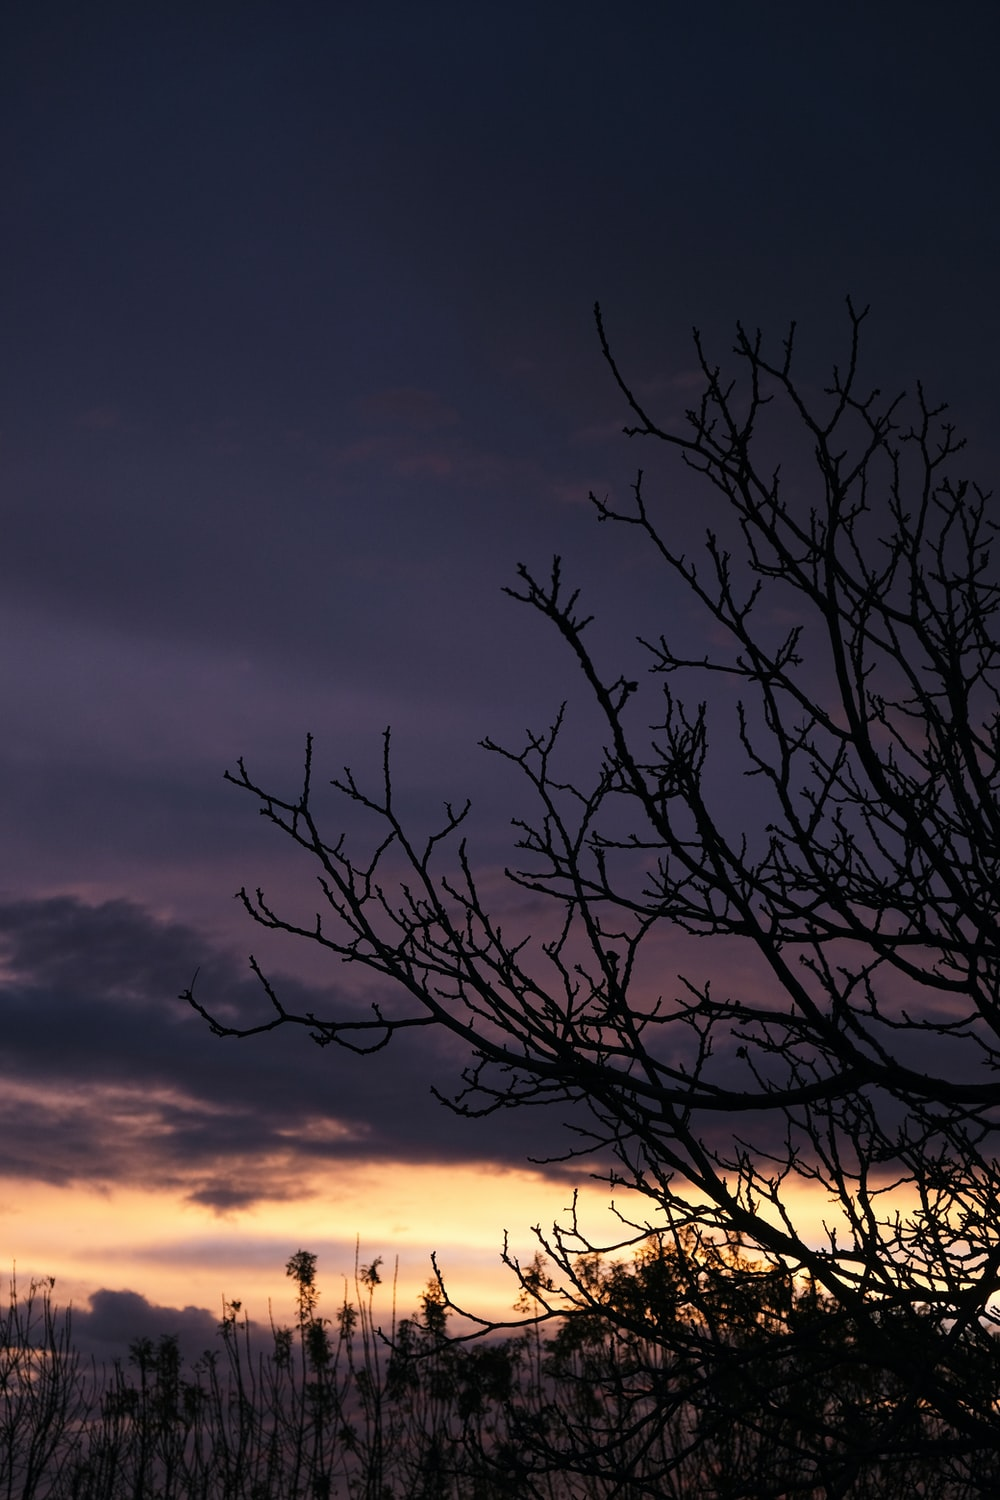 leafless tree under cloudy sky during sunset